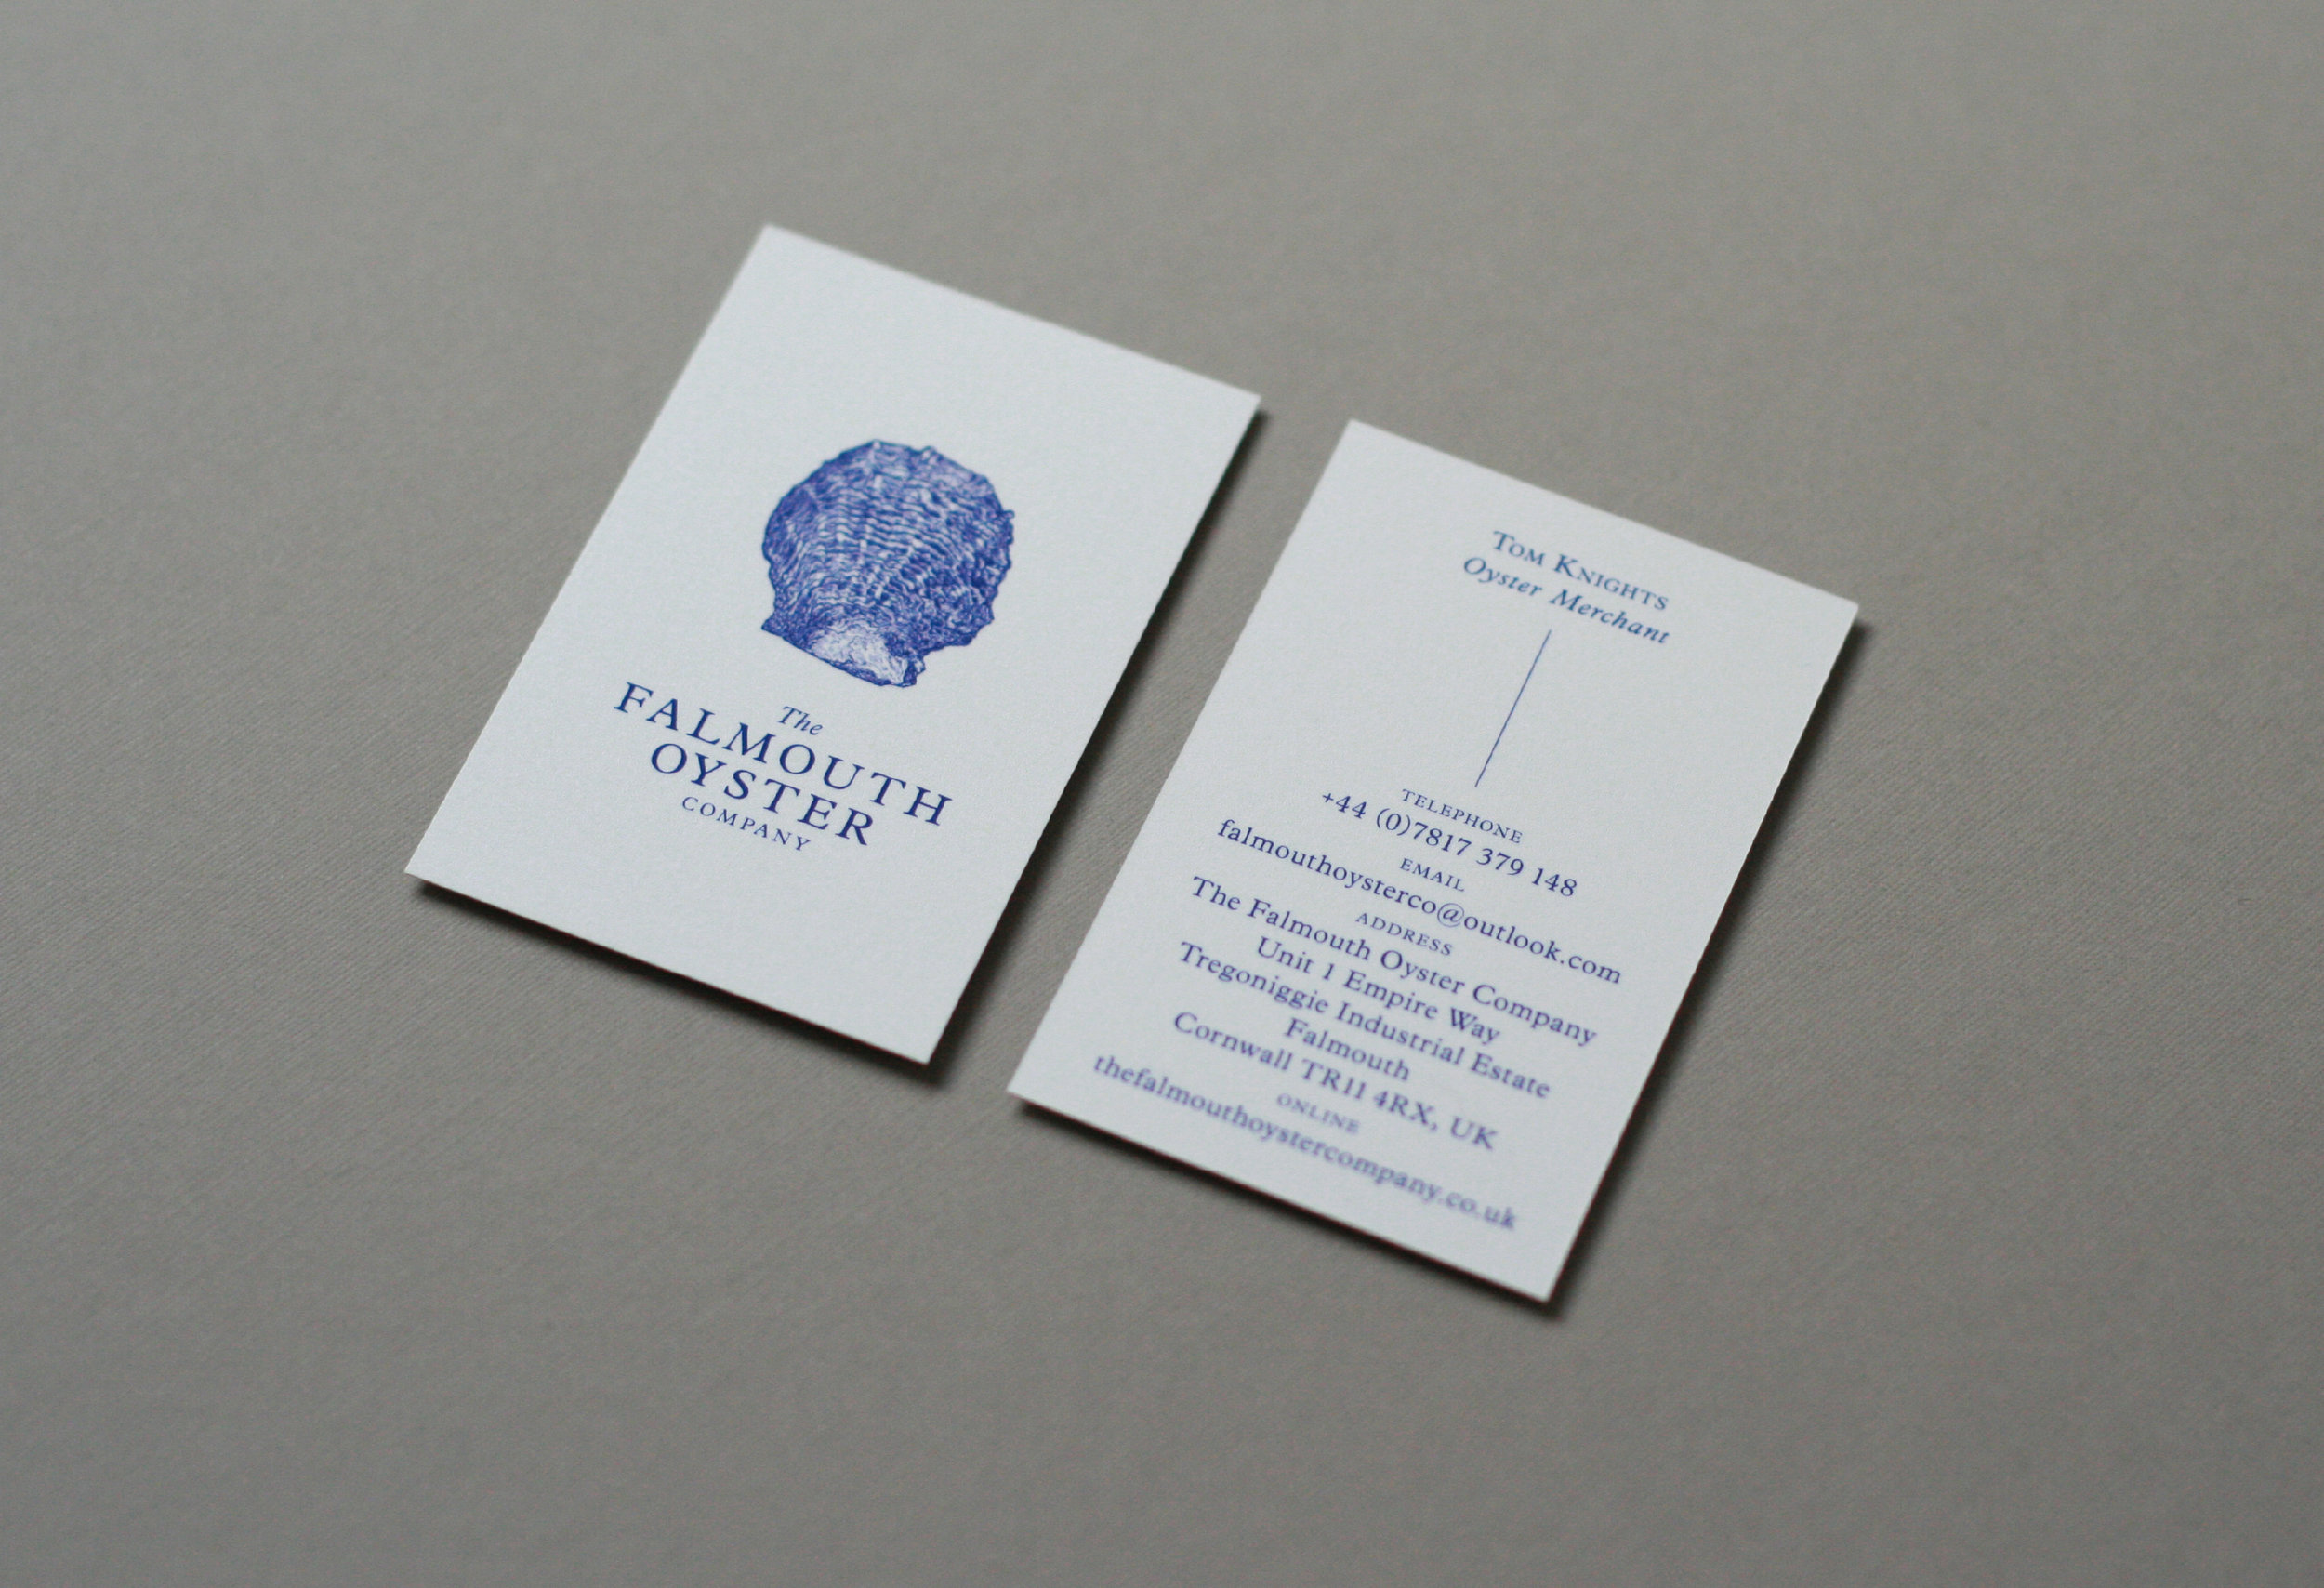 The_Falmouth_Oyster_Company_stationery_design_Alan_Clarke-Symonds_graphic_design_project_business_card.jpg